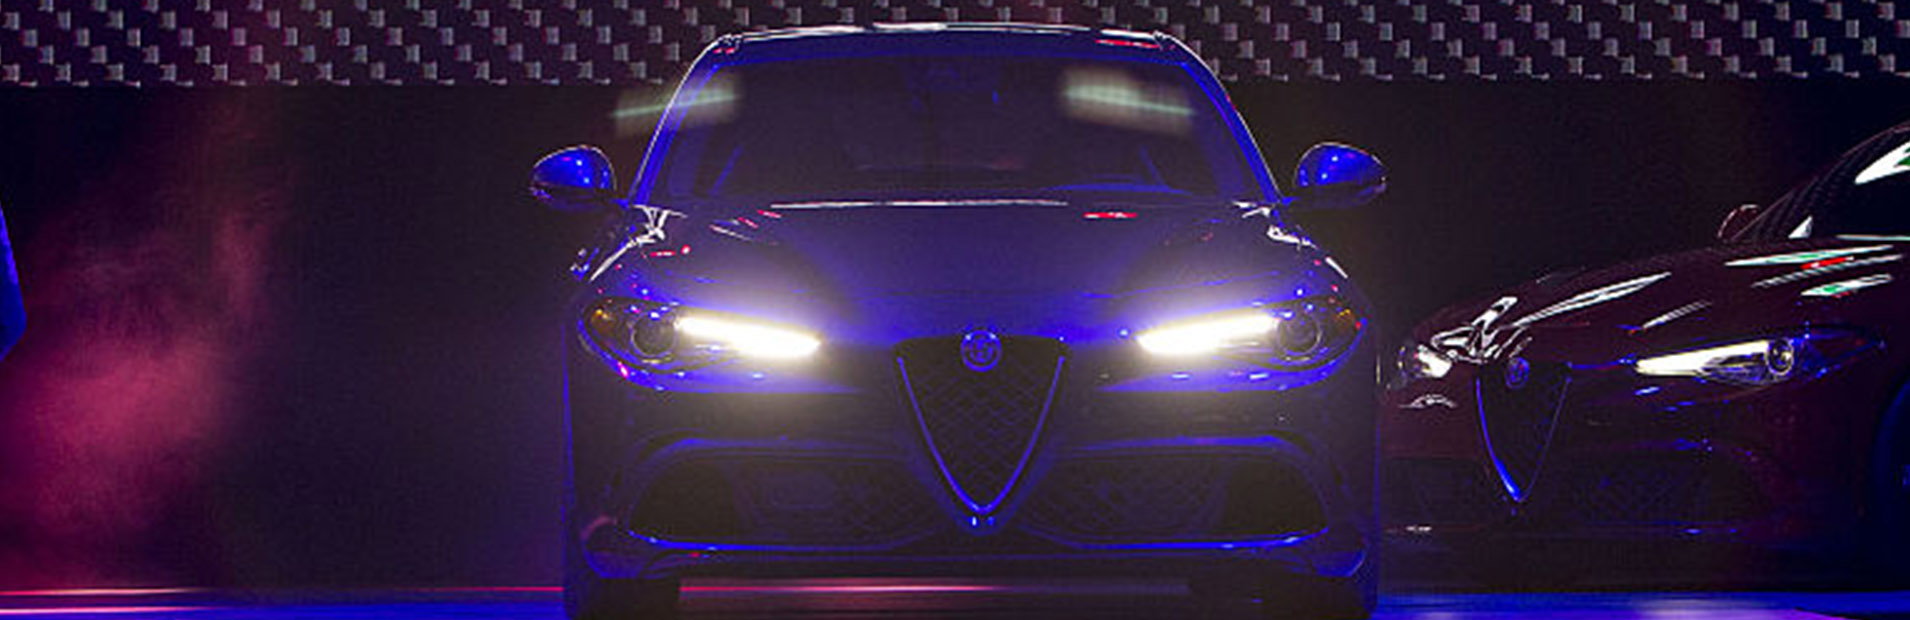 Alfa Romeo Giulia Quadrifoglio The New Flagship And Pirelli P Zero Rear Axle Corsa